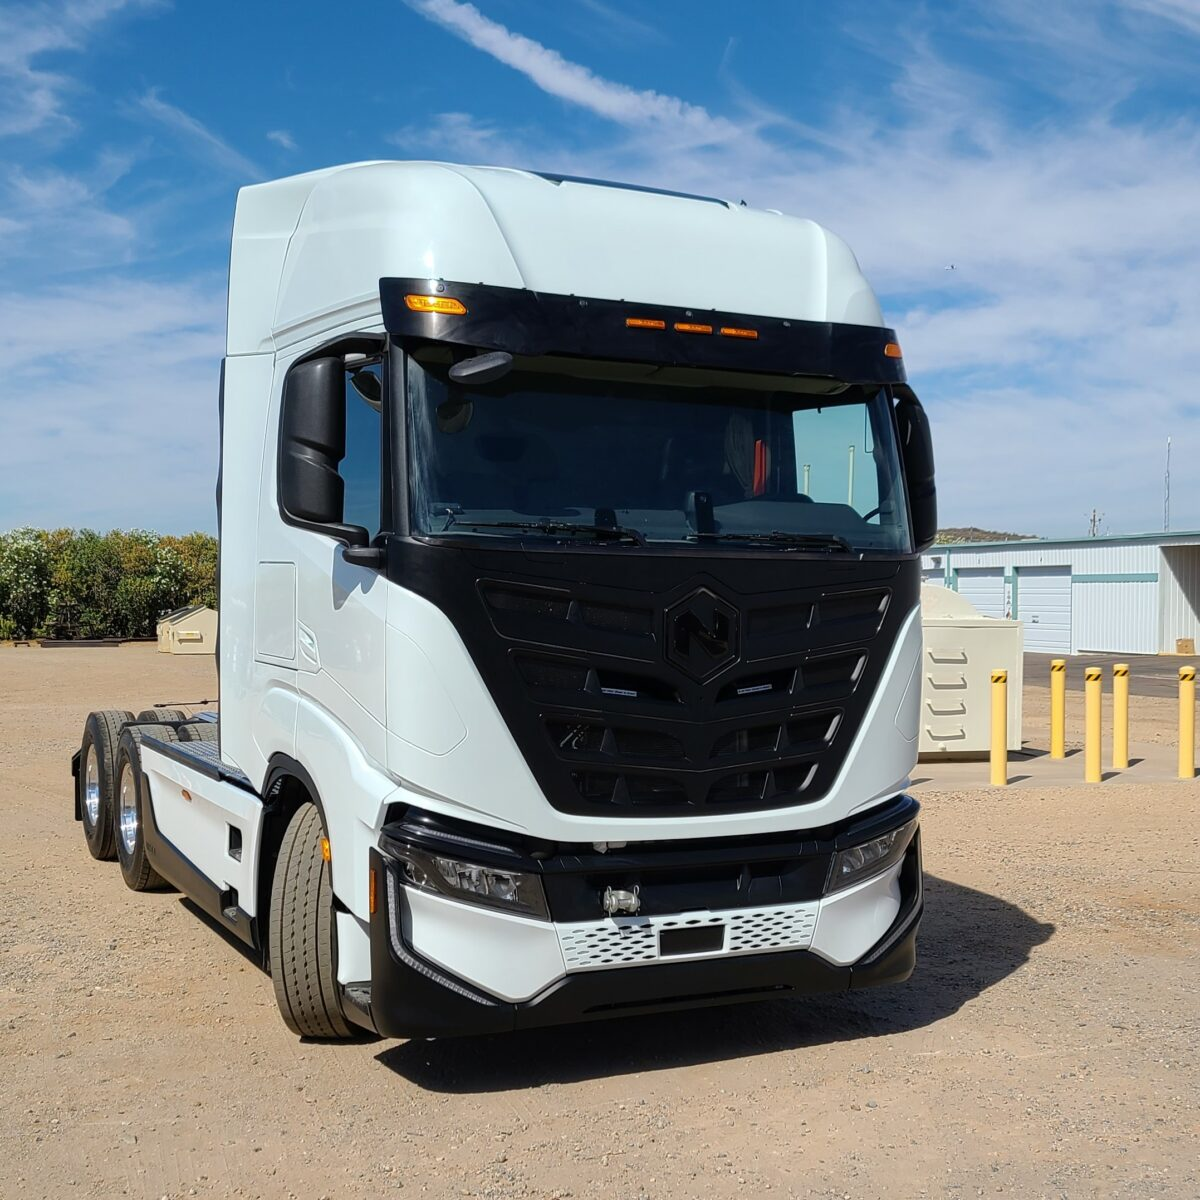 Exclusive first ride: Nikola electric truck can turn on a dime